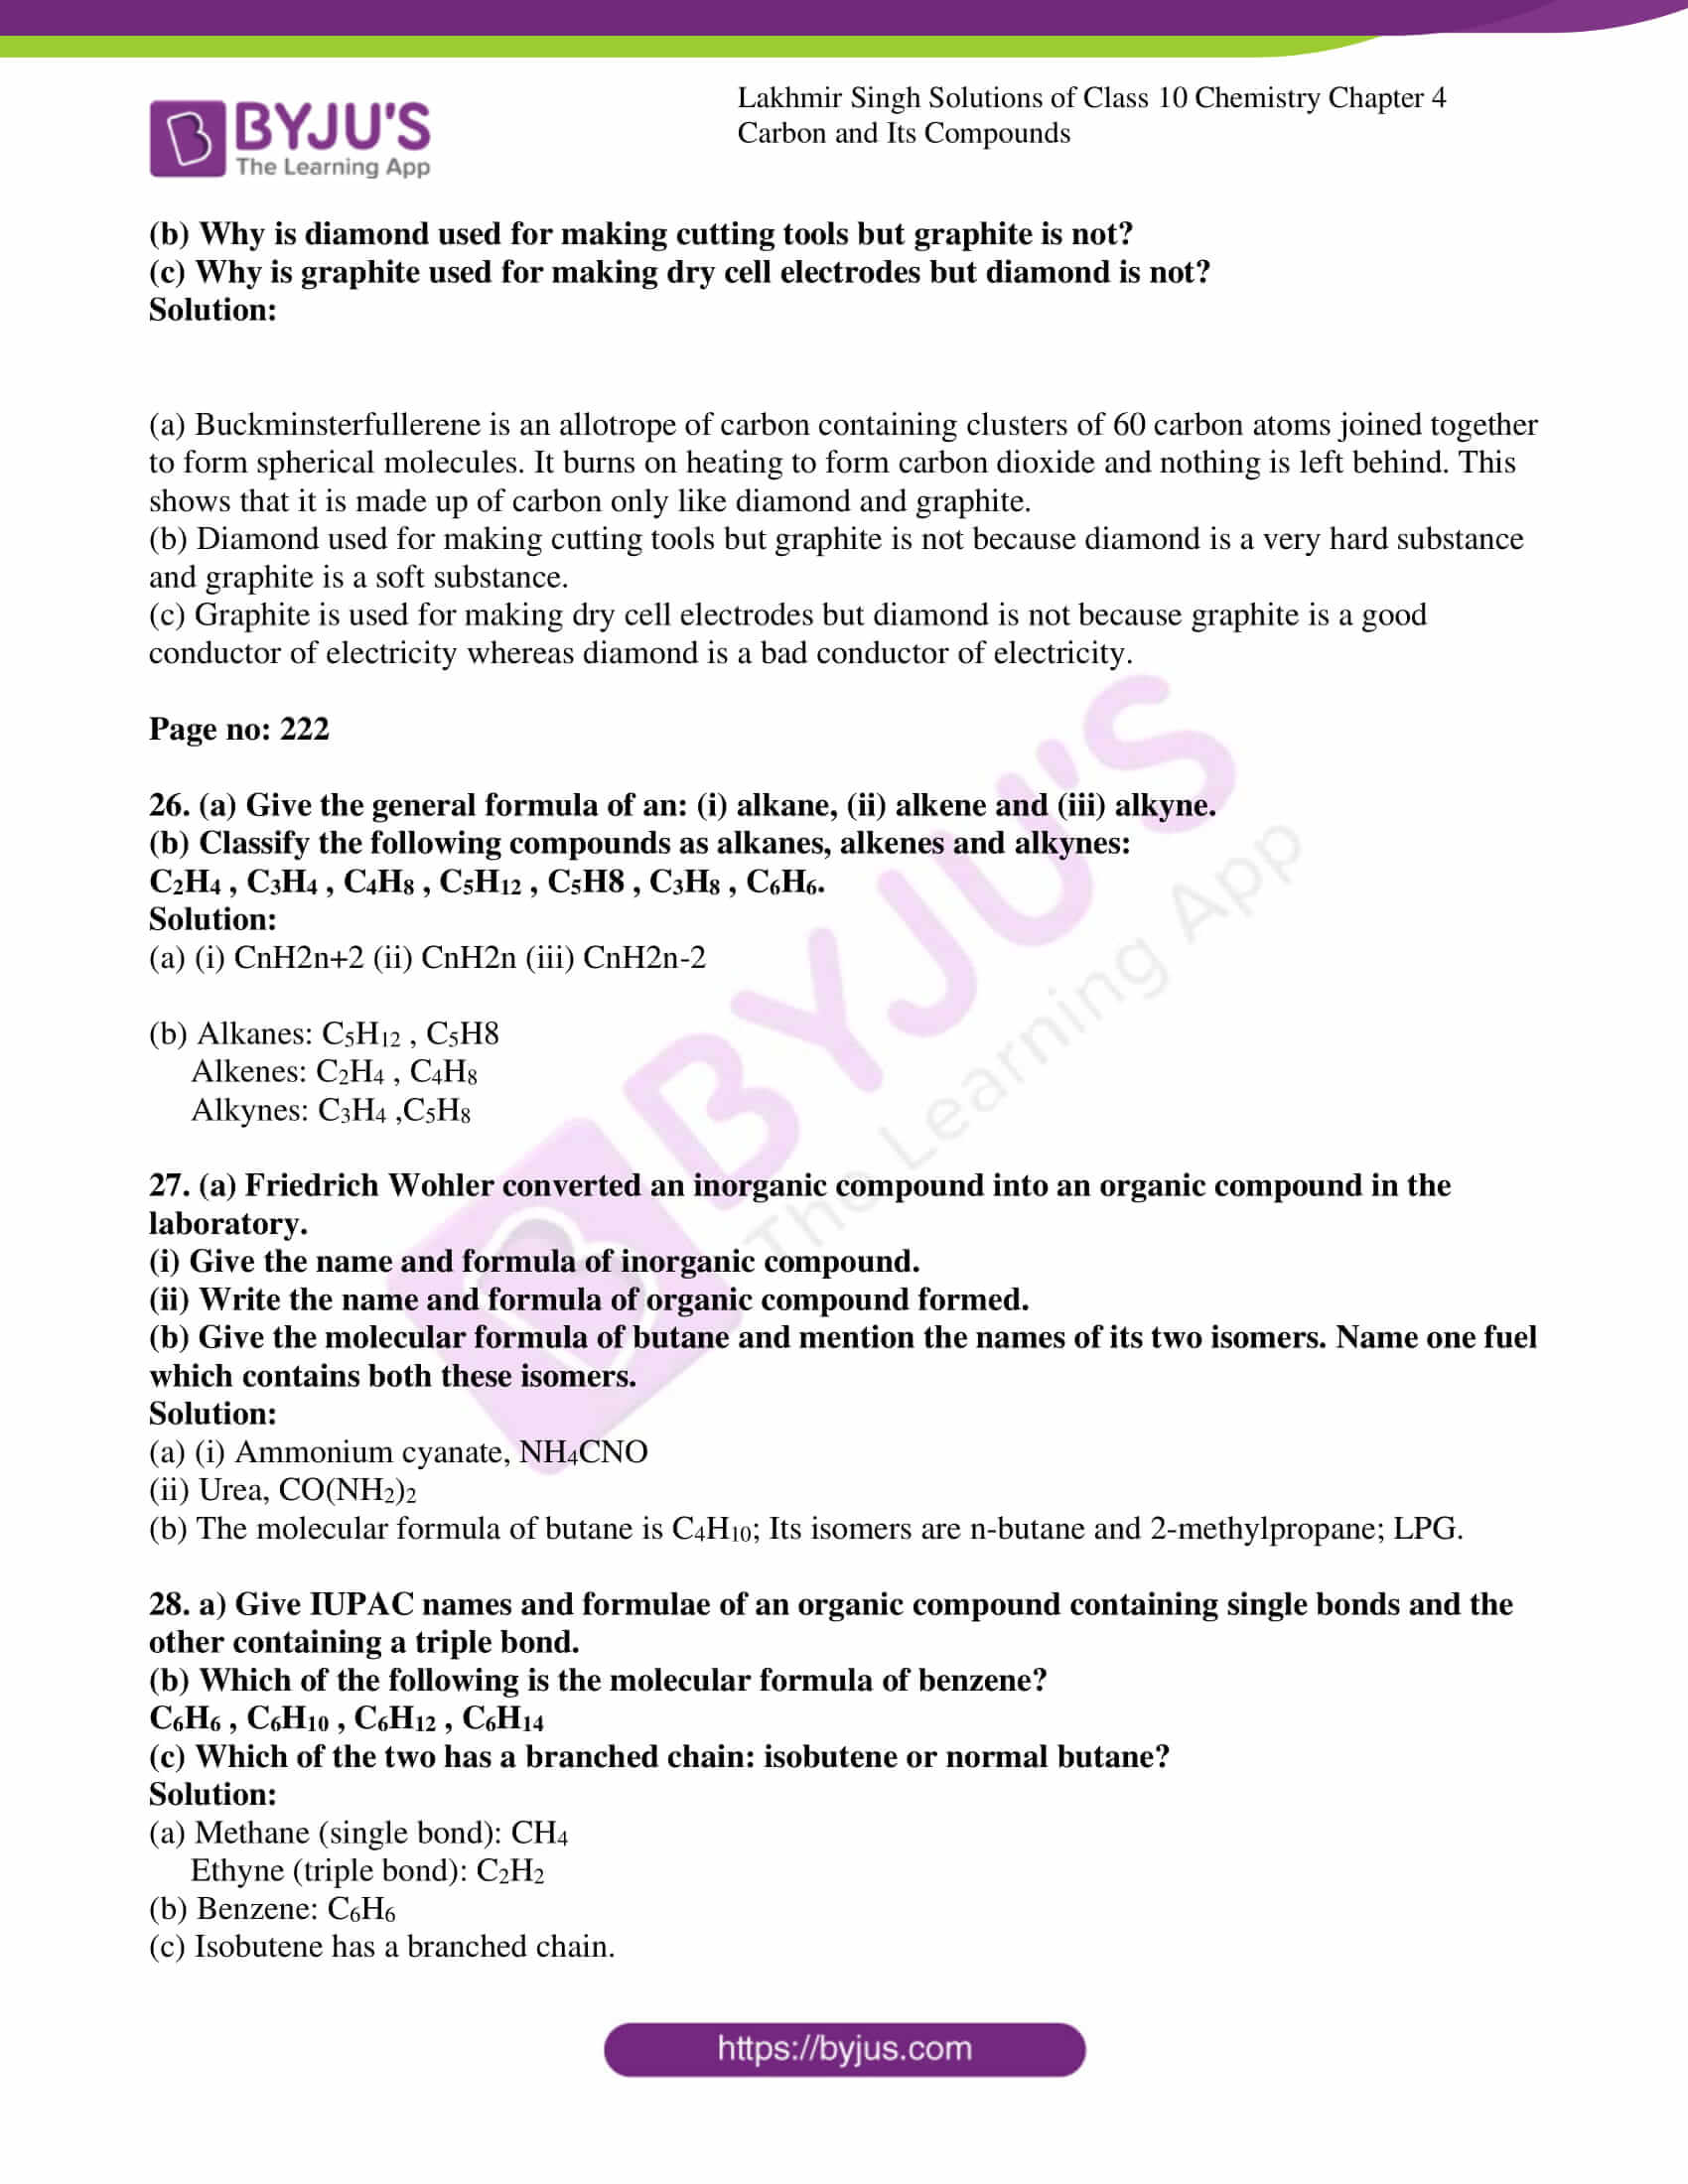 lakhmir singh solutions class 10 chemistry chapter 4 06